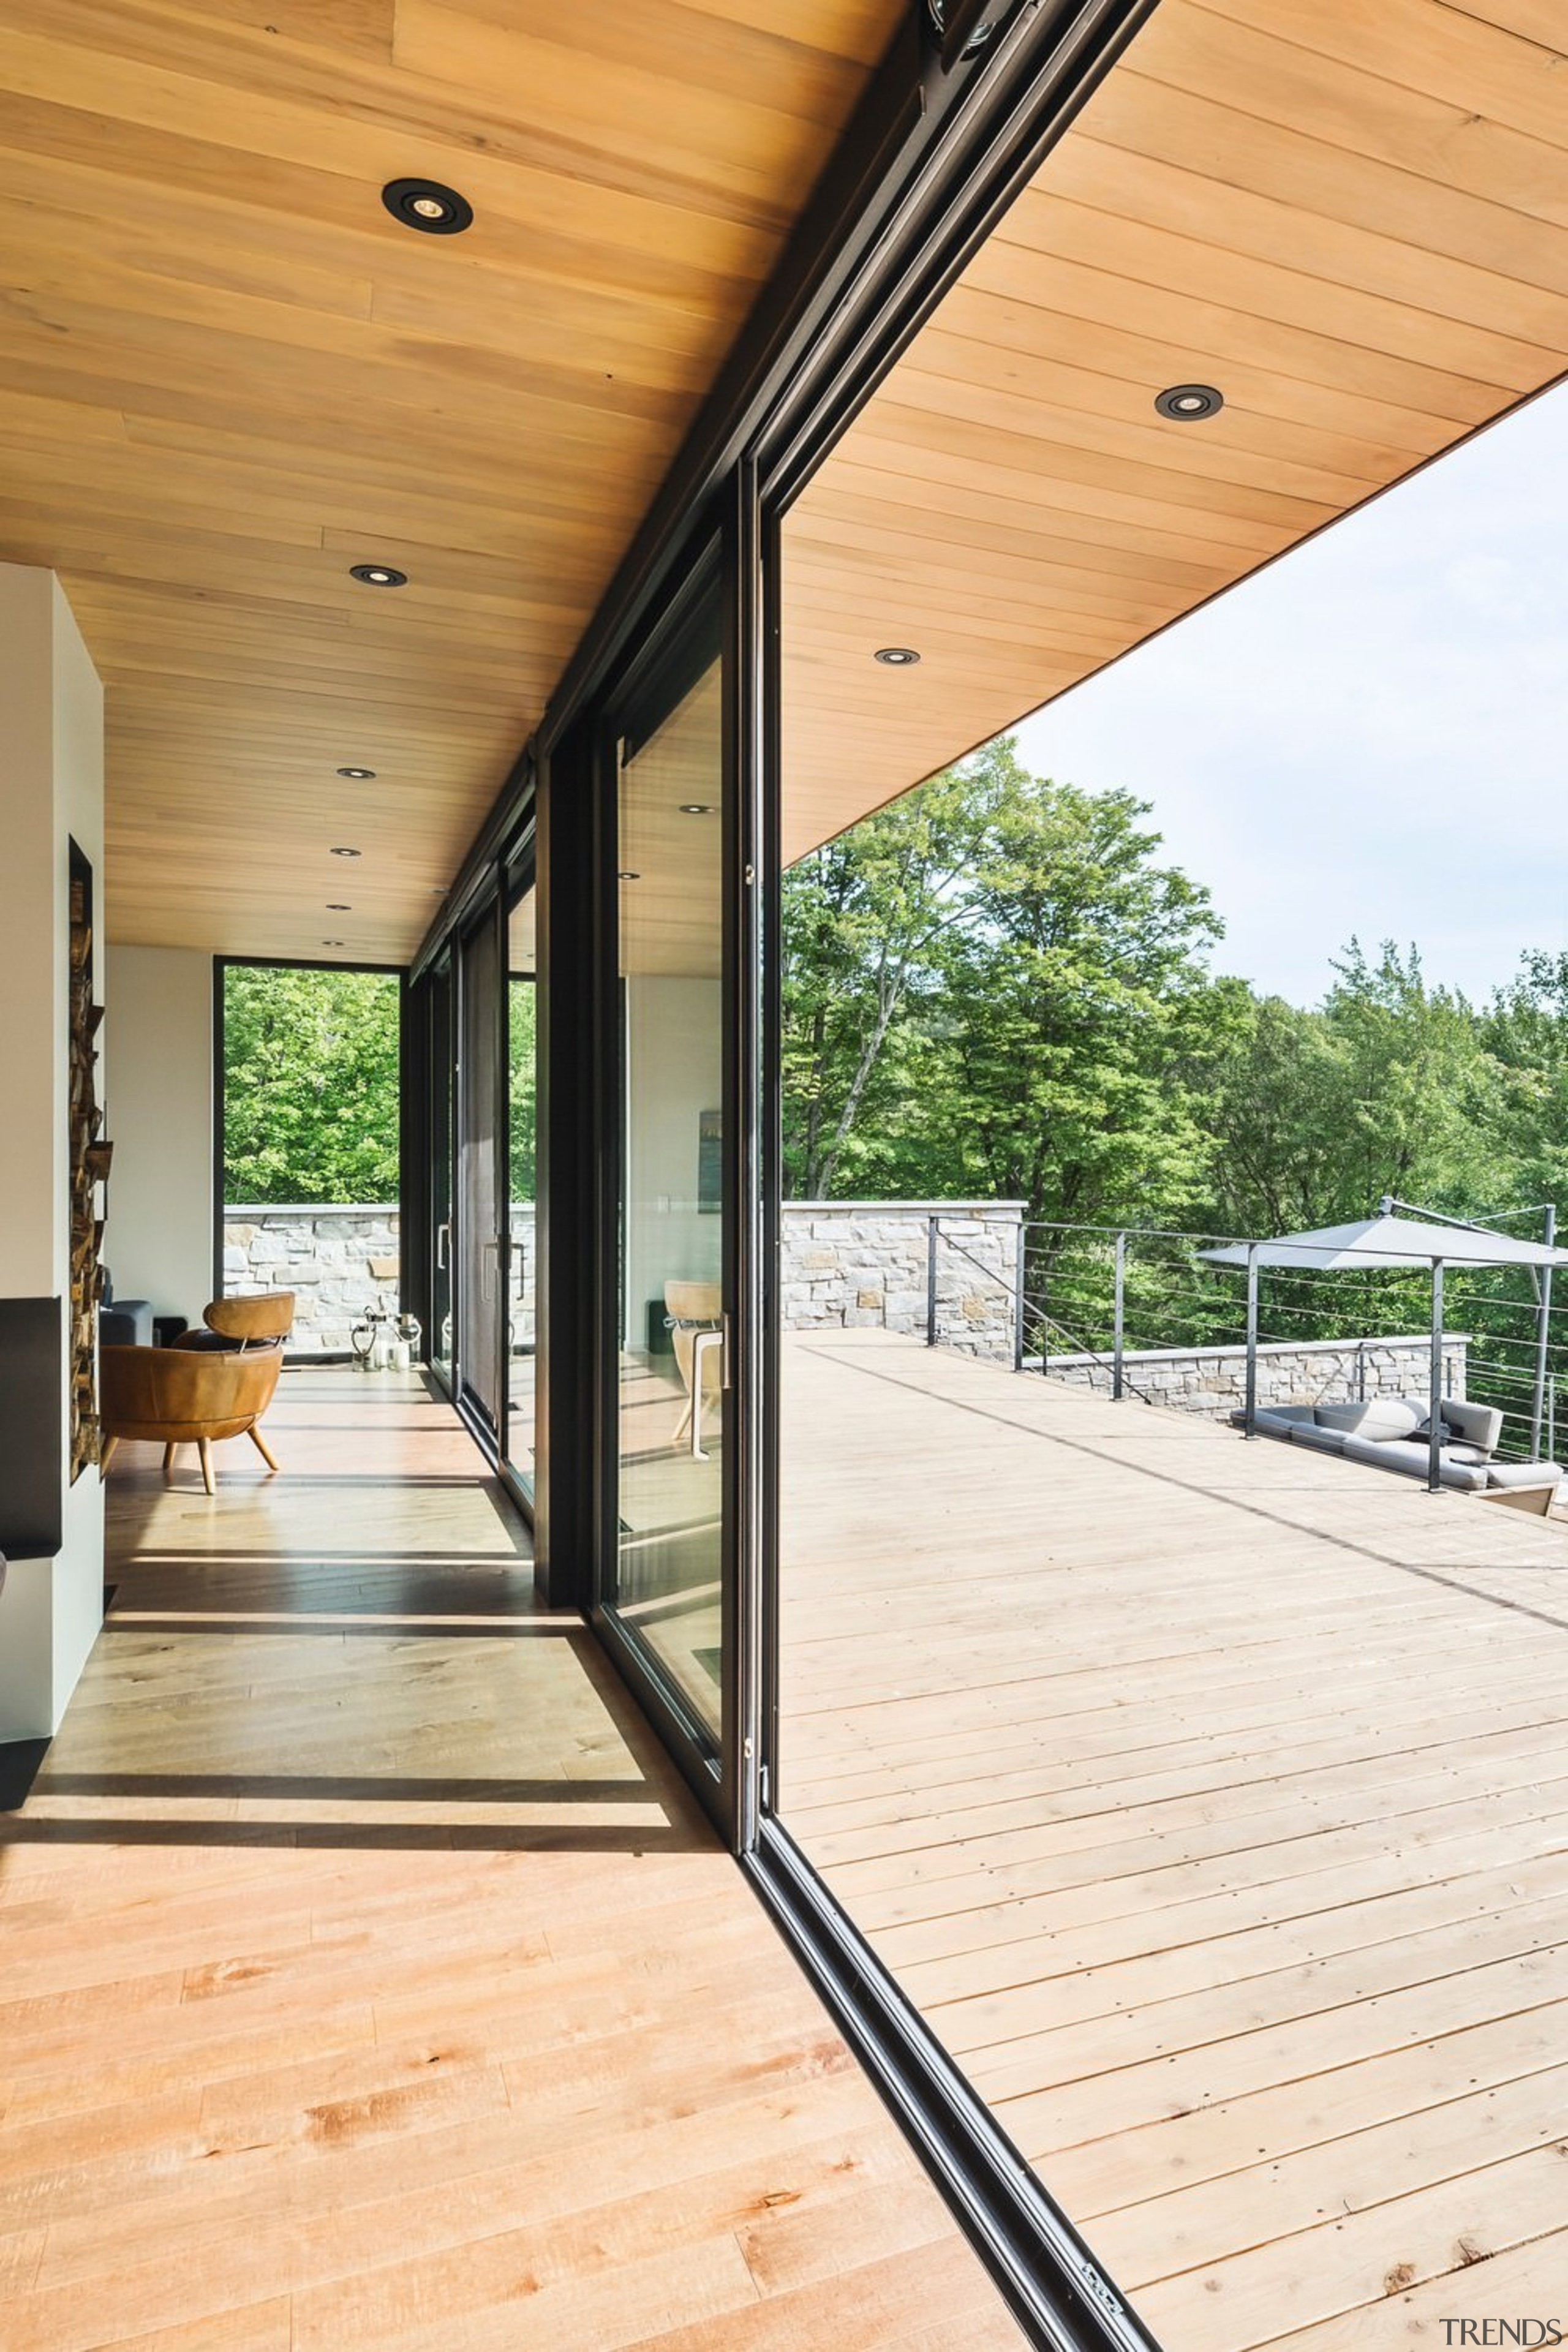 Giant sliders make the indoors and outdoors one architecture, daylighting, deck, door, floor, flooring, glass, hardwood, home, house, porch, real estate, window, wood, wood flooring, orange, white